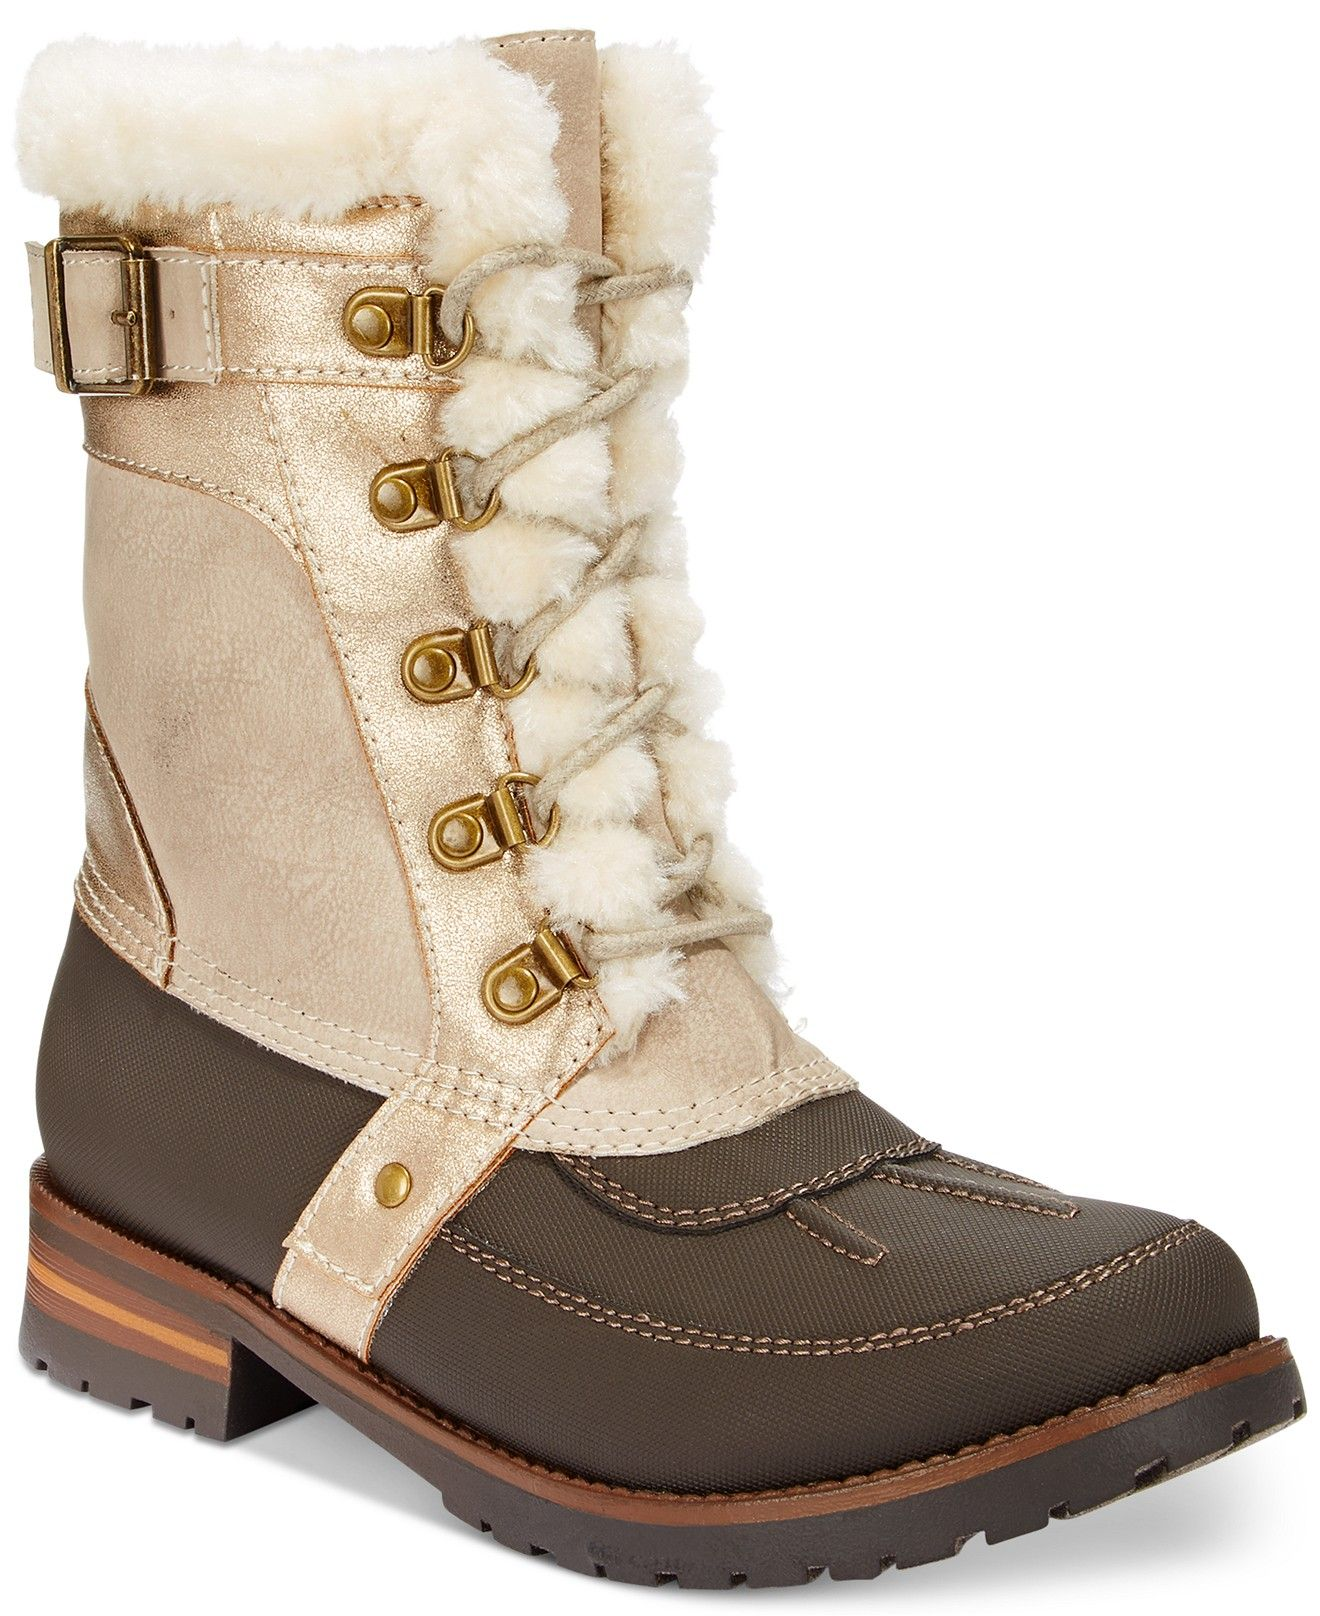 Rock & Candy Danlea Cold Weather Boots | Shops, Cold weather and ...